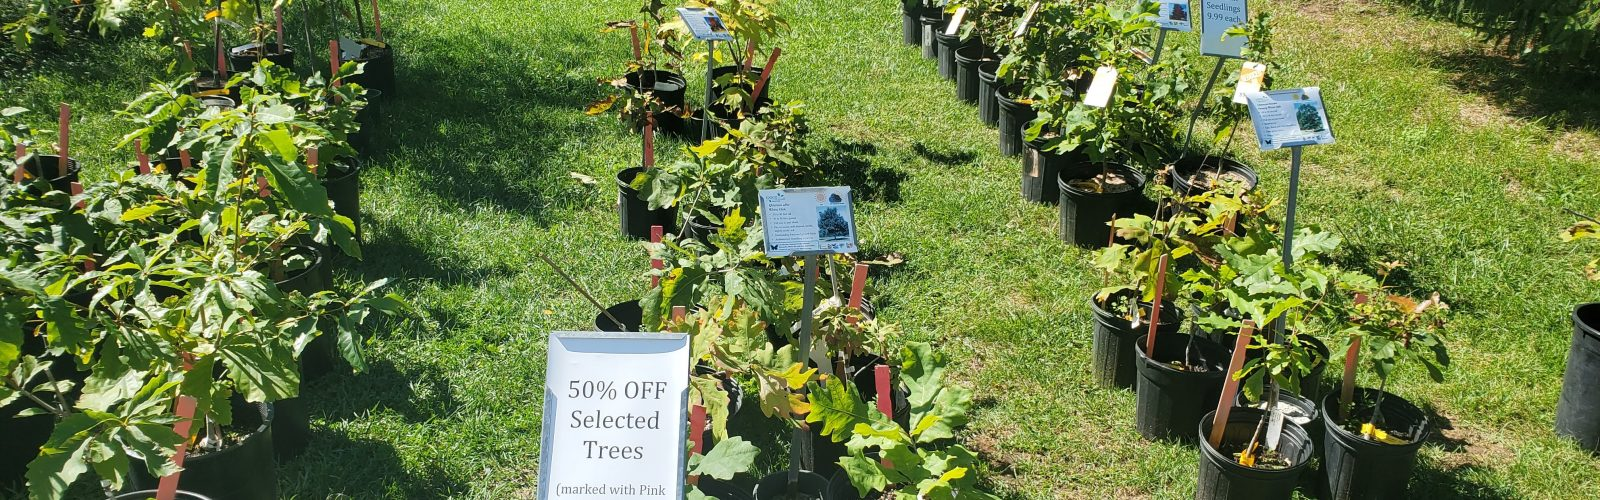 Sale on Select Oaks and Maples